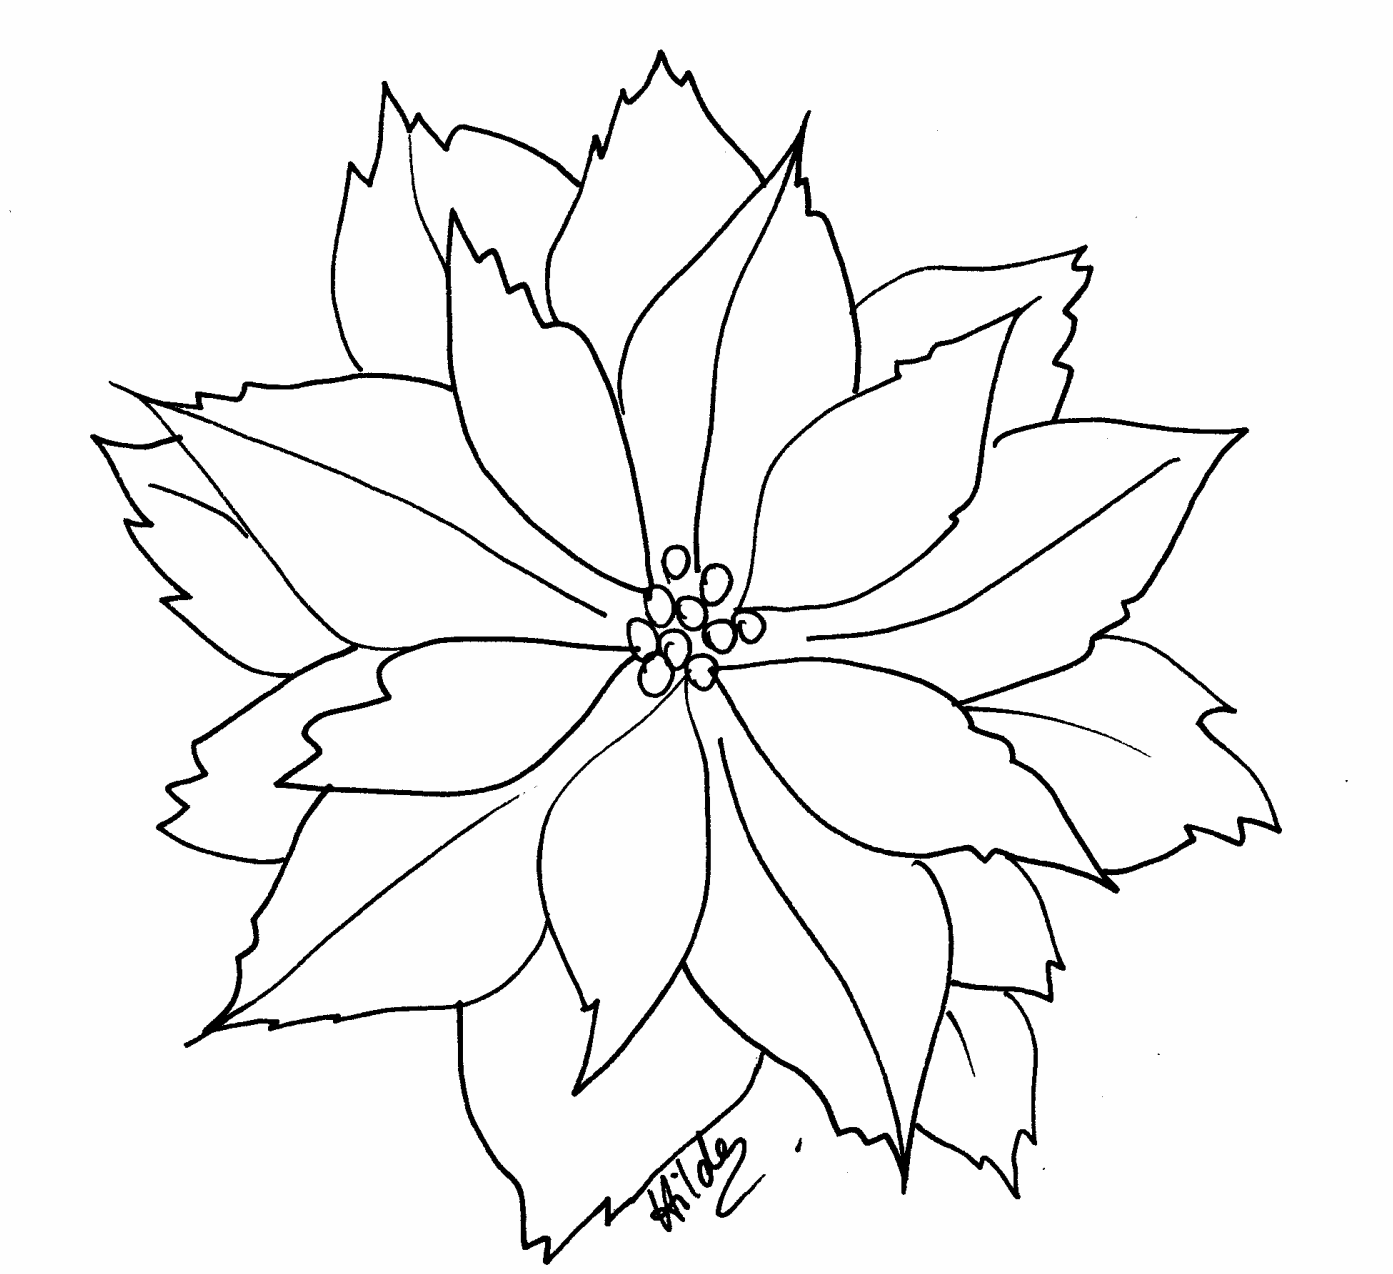 Poinsettia coloring page - Coloring Pages & Pictures - IMAGIXS